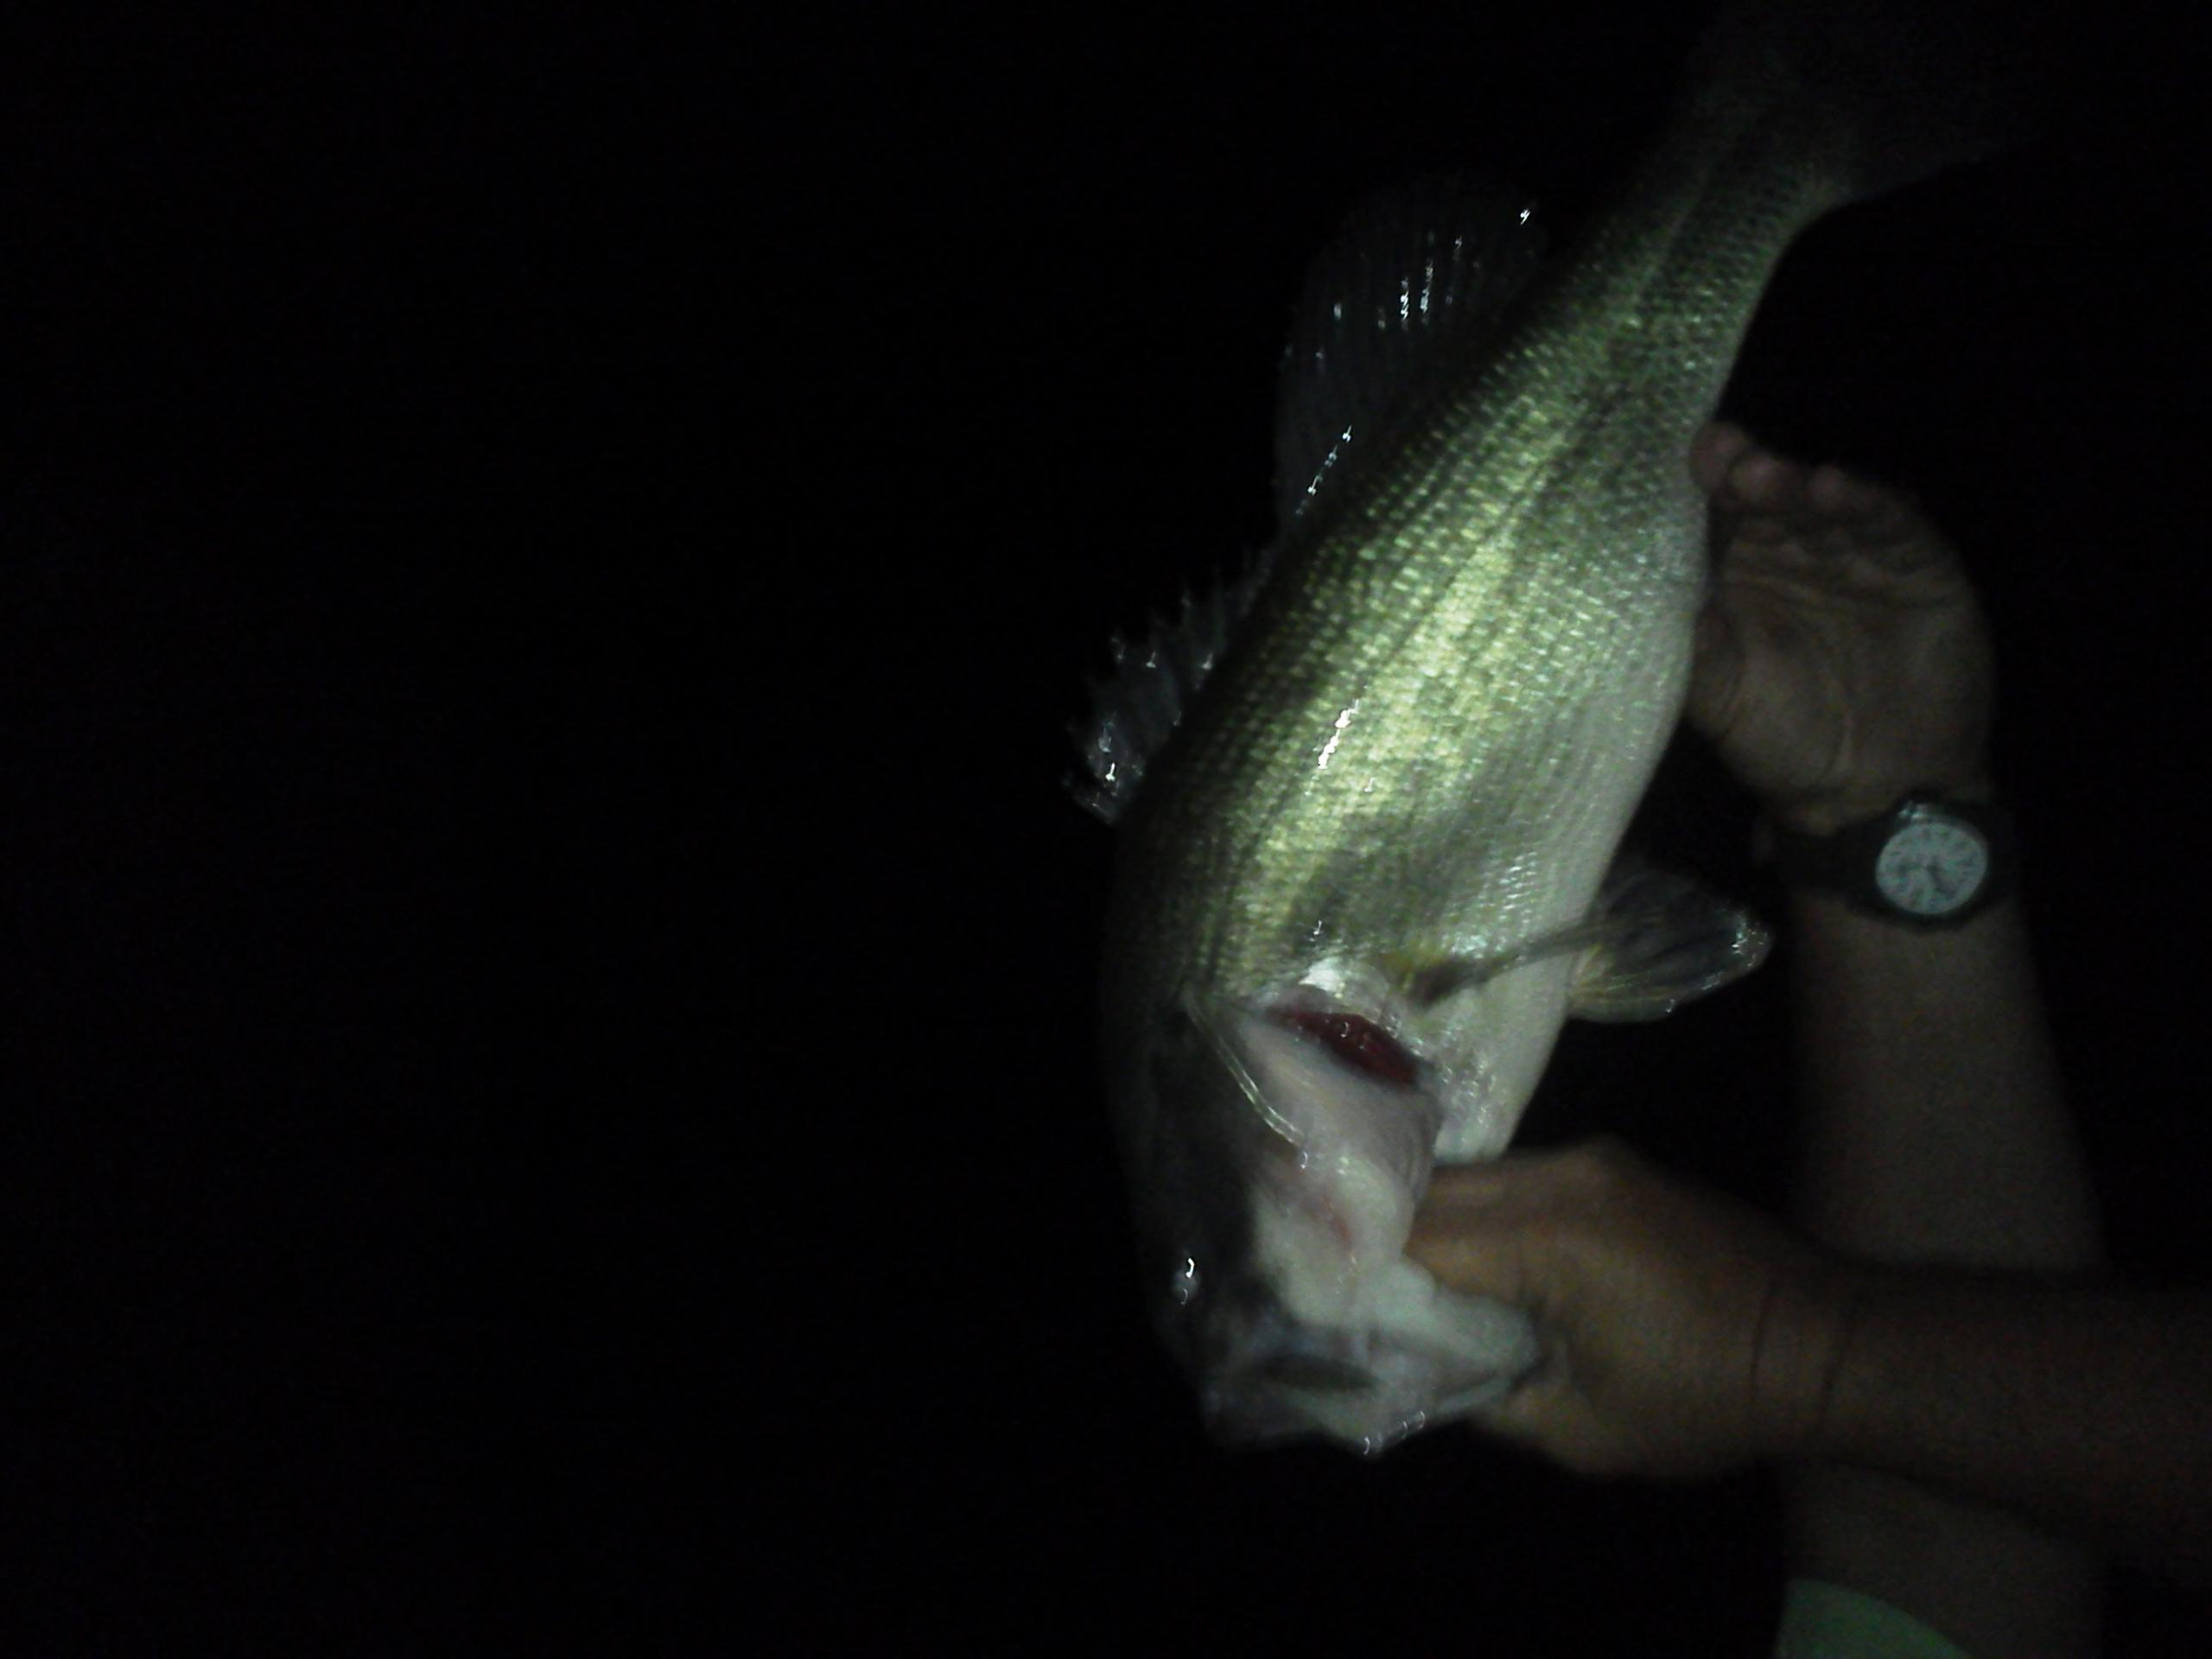 Night time pig hunt is always fun catching 6 pounders